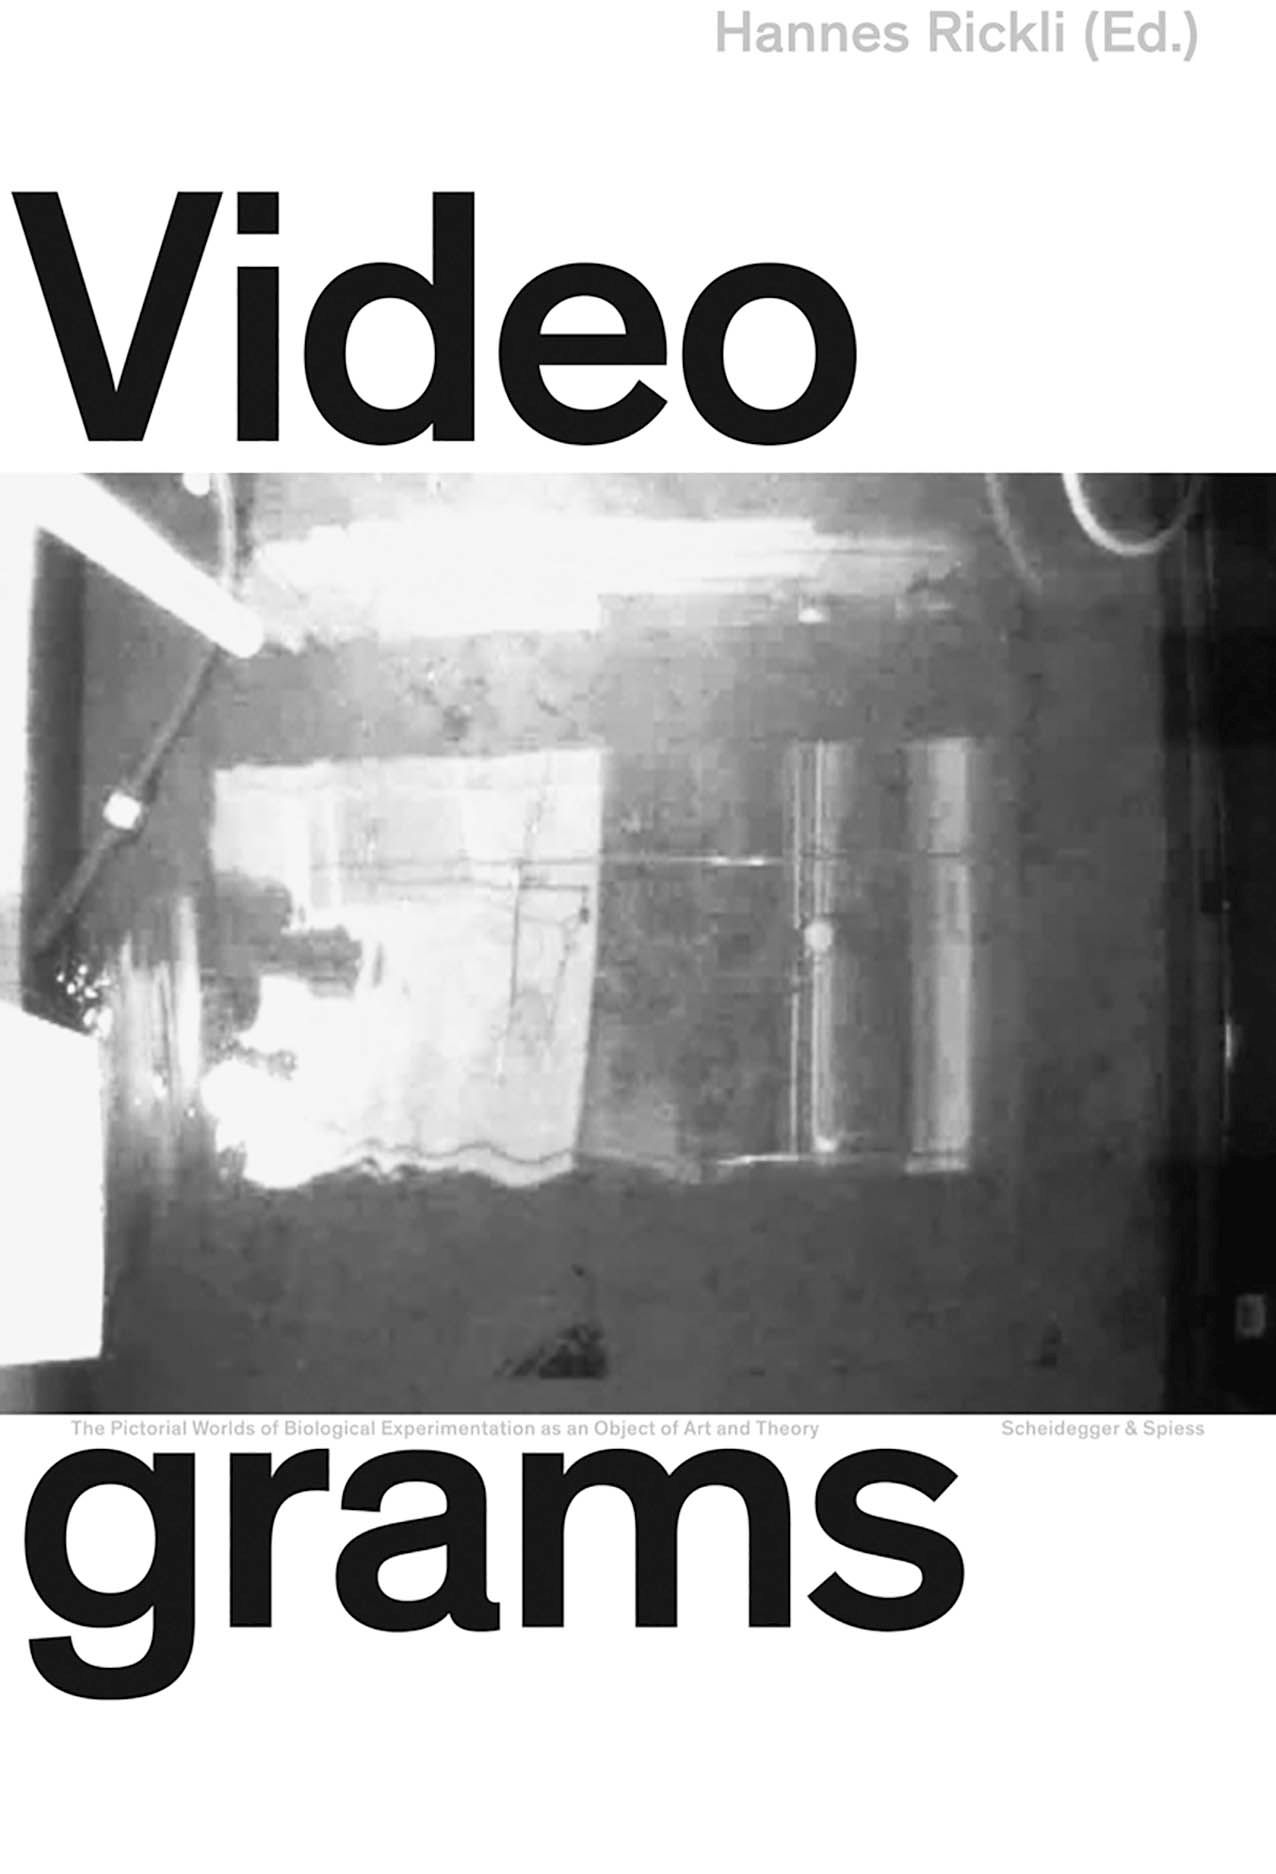 Videograms: The Pictorial Worlds of Biological Experimentation as an Object of Art and Theory